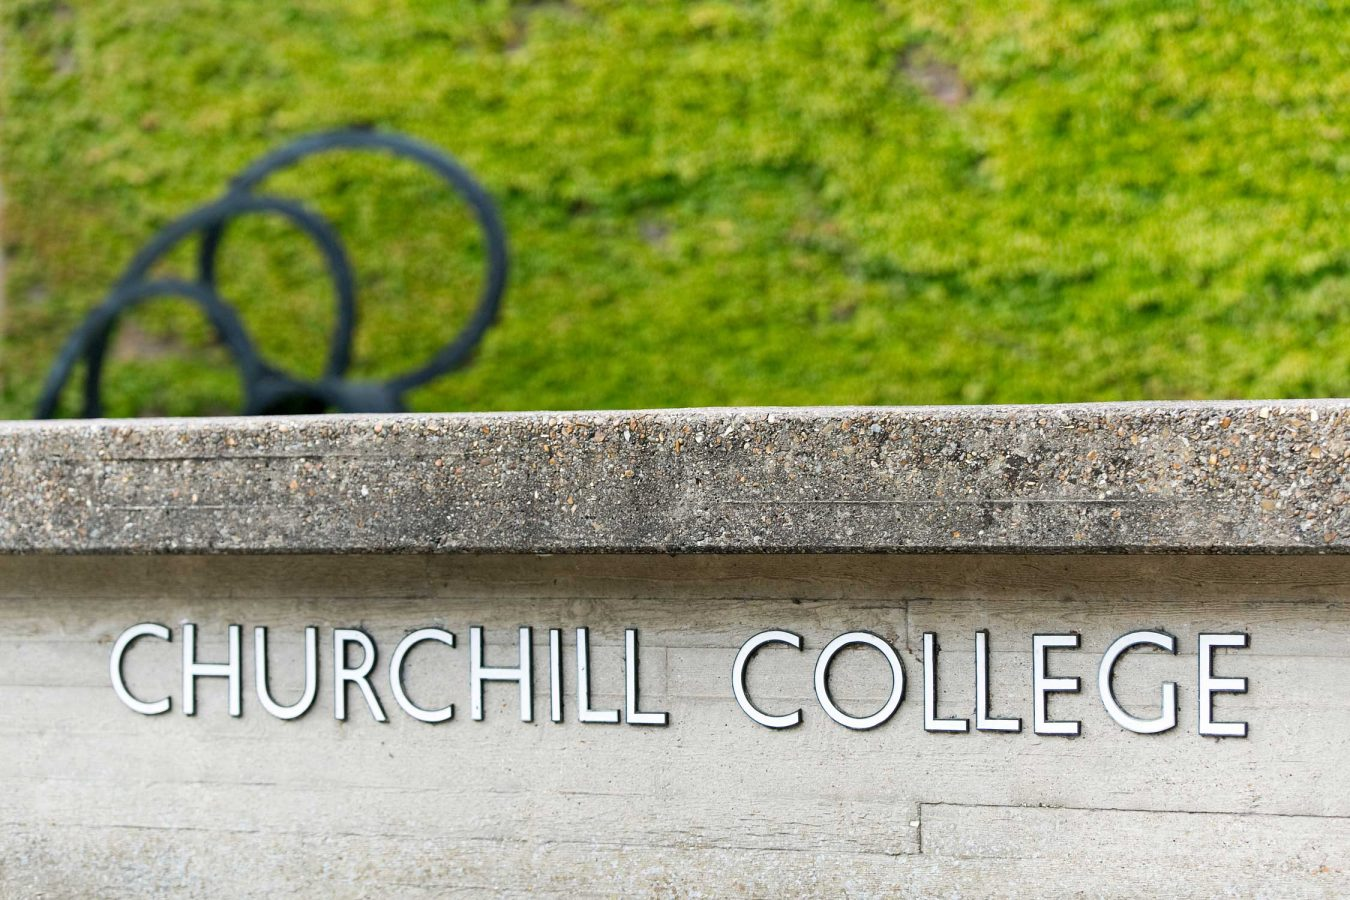 churchill-college-university-of-cambridge-conference